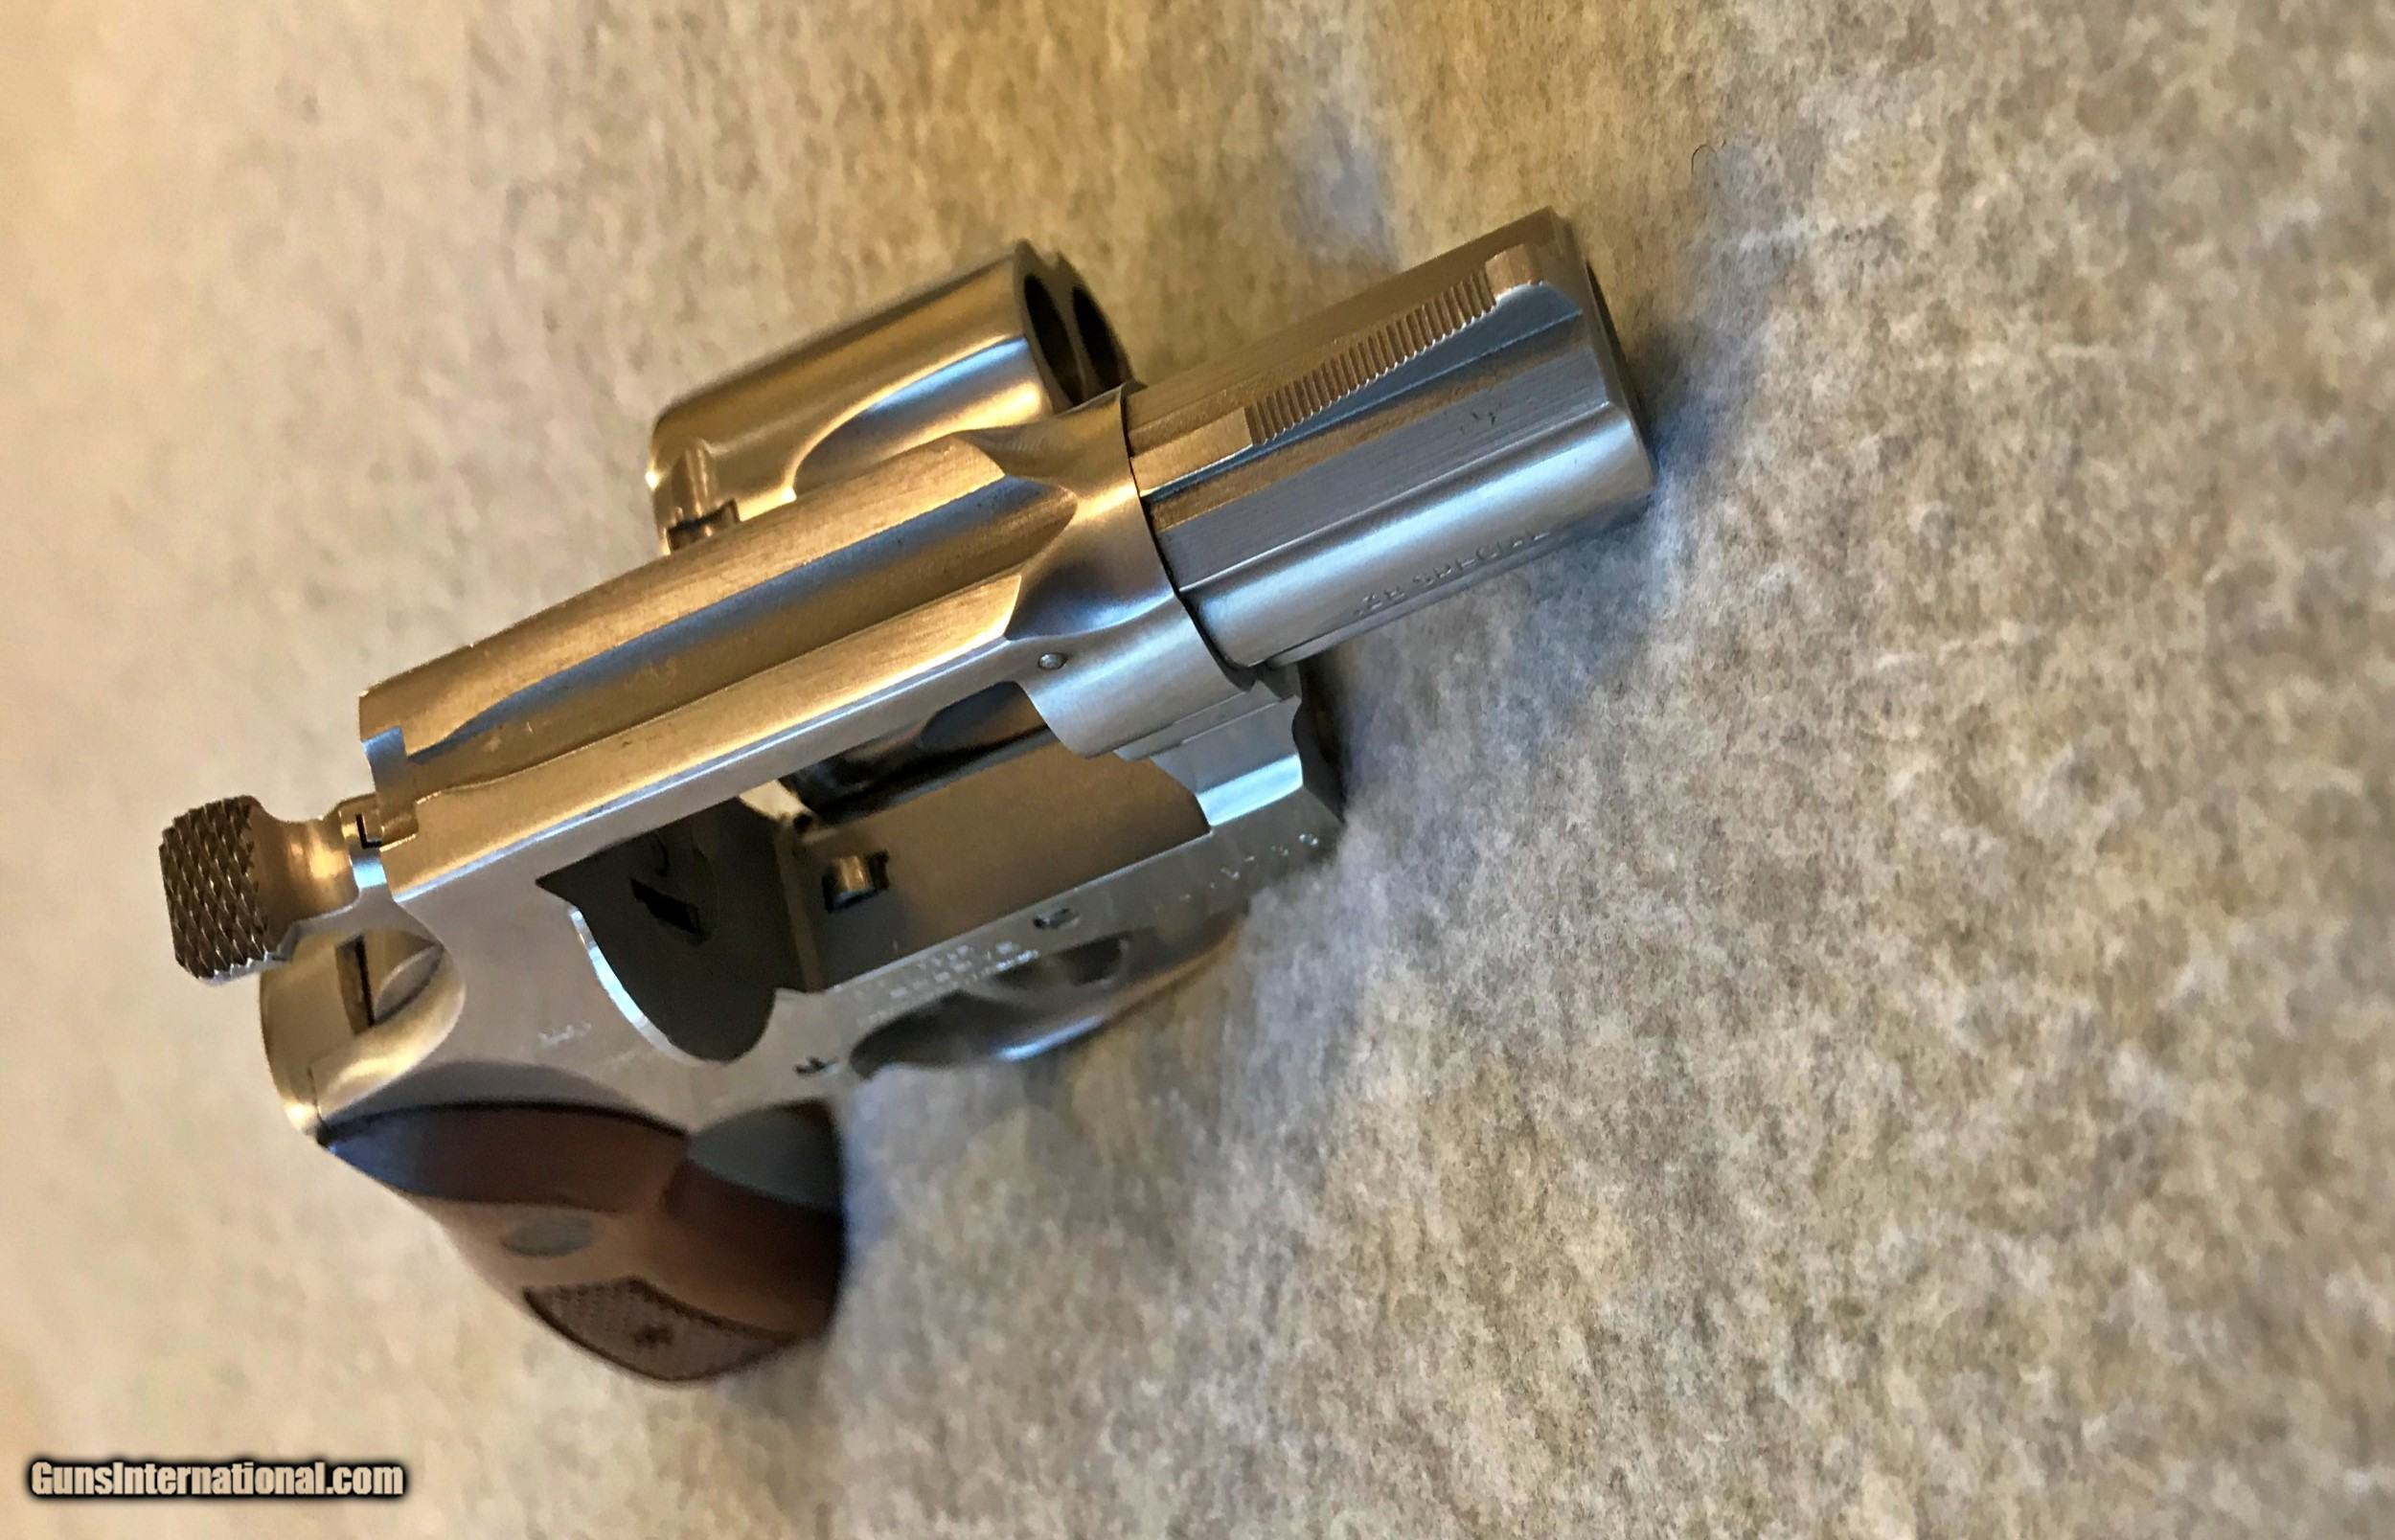 ROSSI 88-5 38 SPECIAL STAINLESS STEEL 2IN REVOLVER for sale